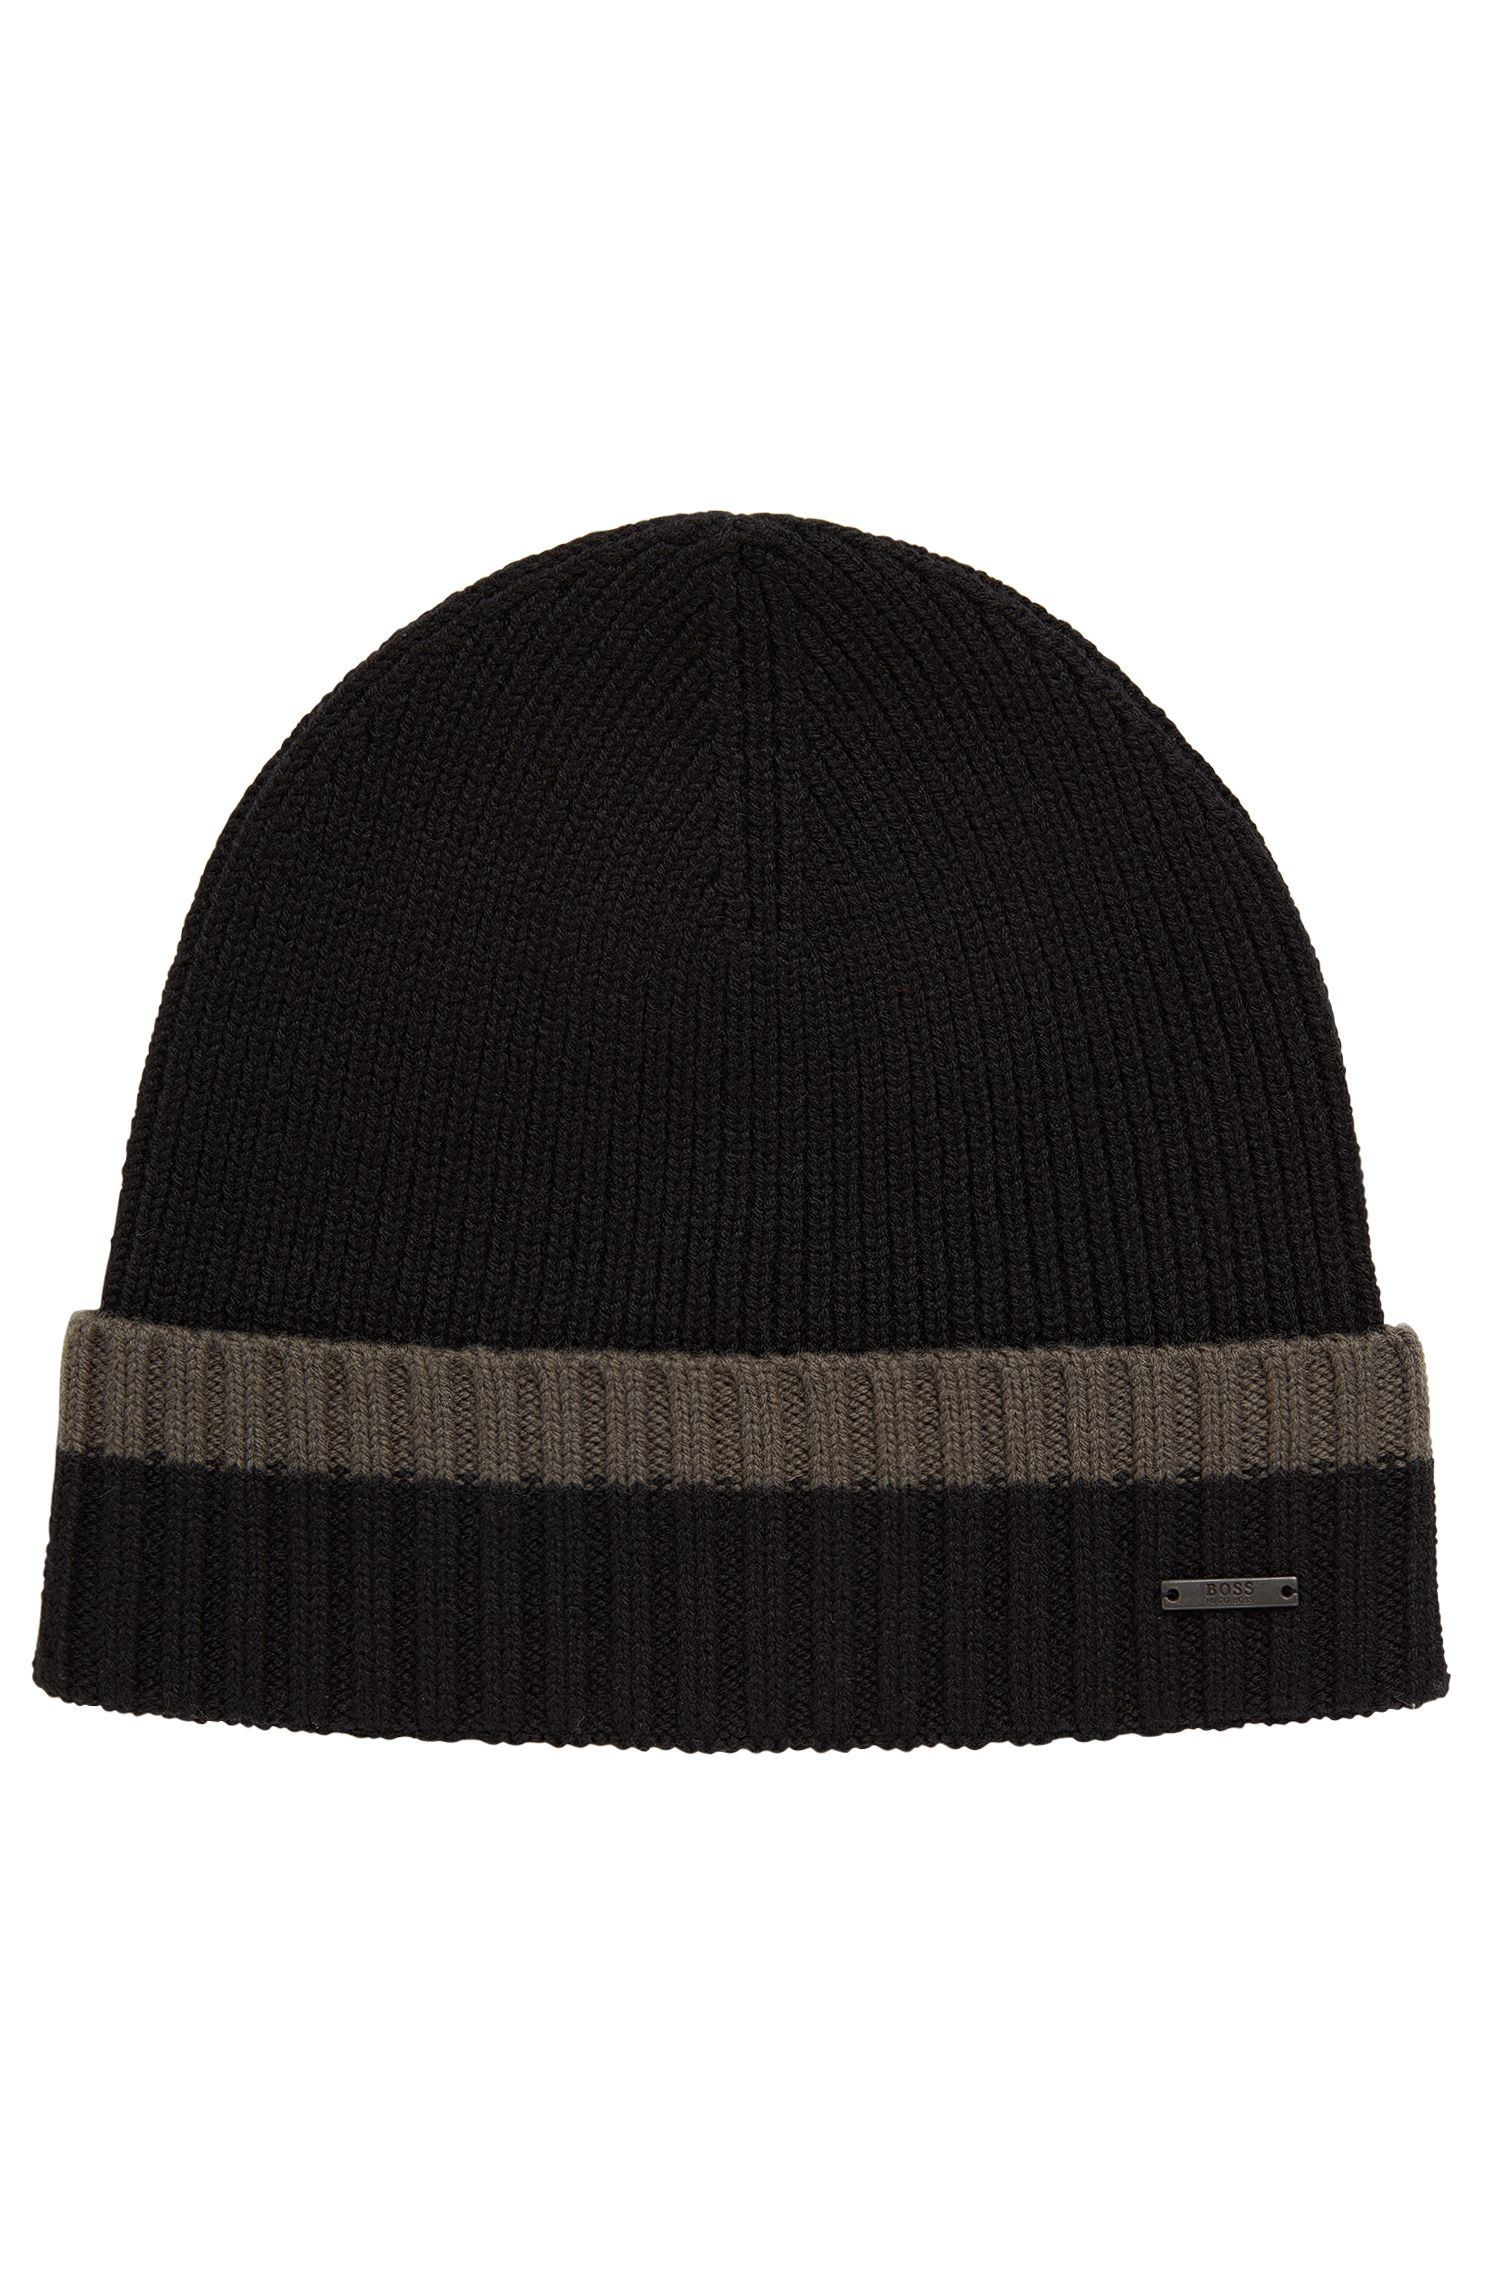 Beanie hat in virgin wool with contrast turn-up